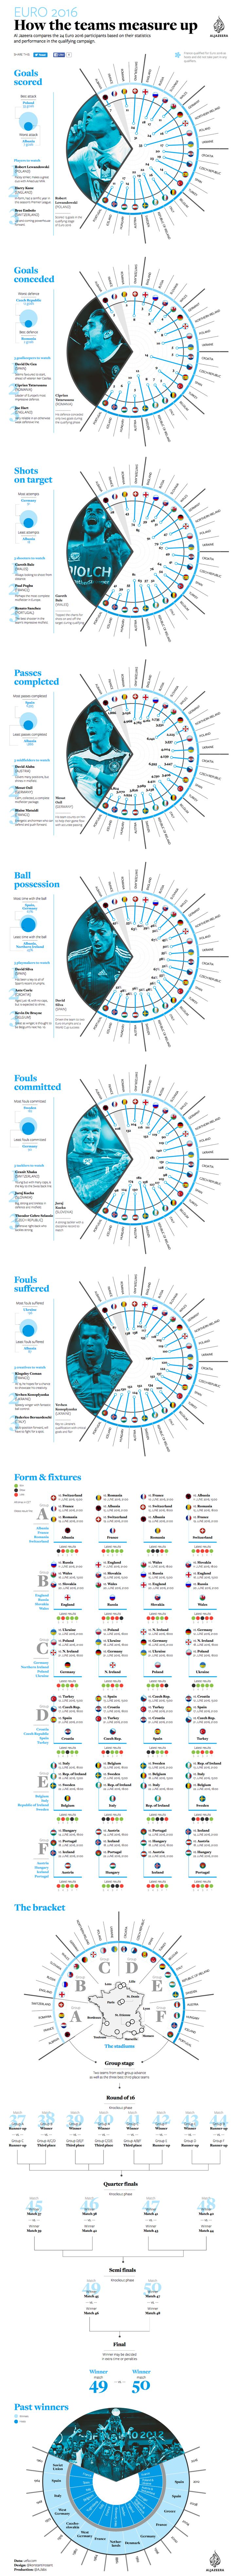 Euro 2016: How the teams measure up